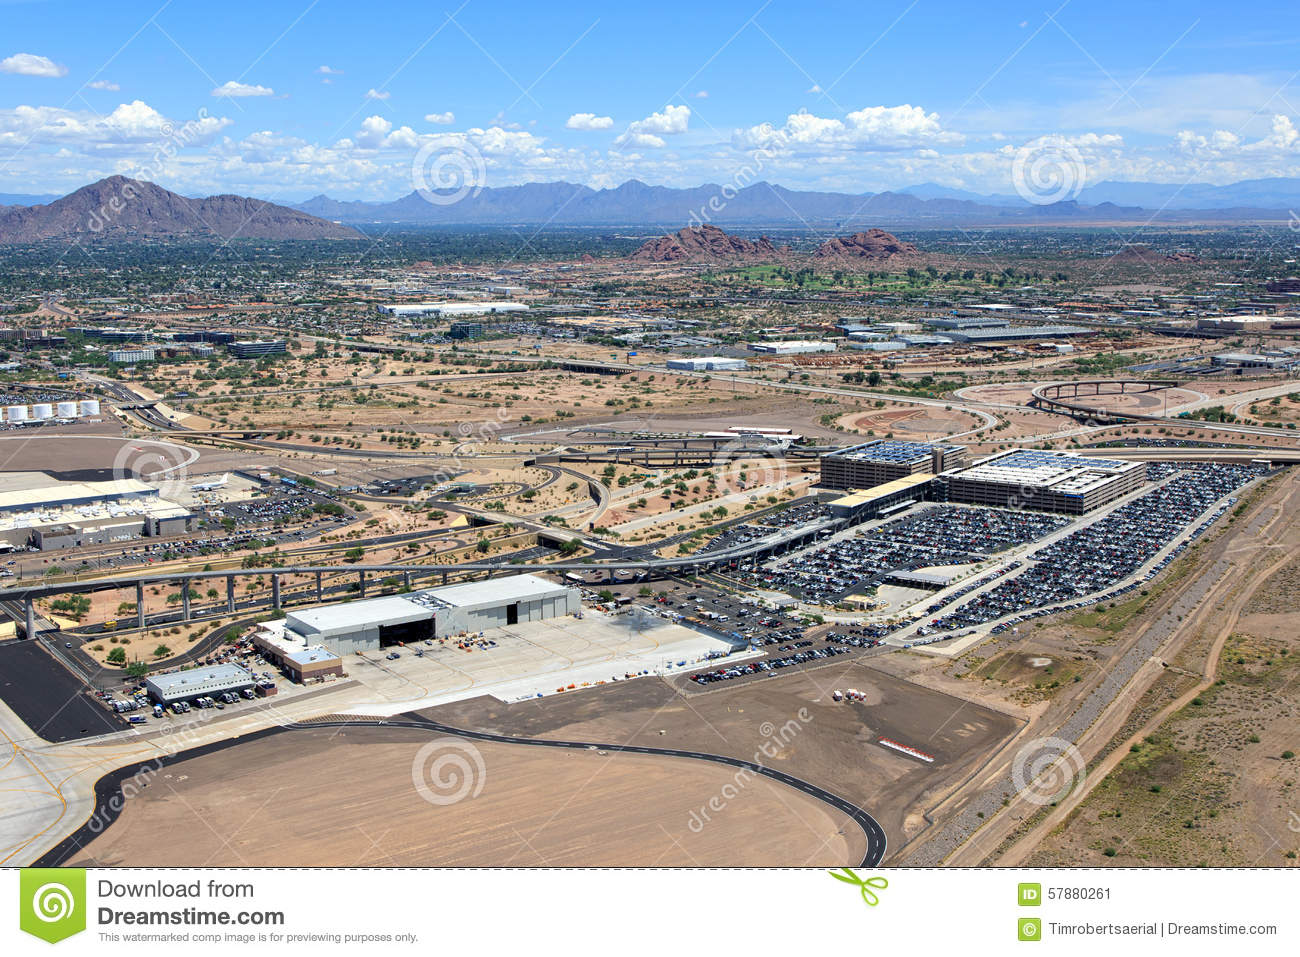 Airport Parking And Transportation Stock Image - Image of